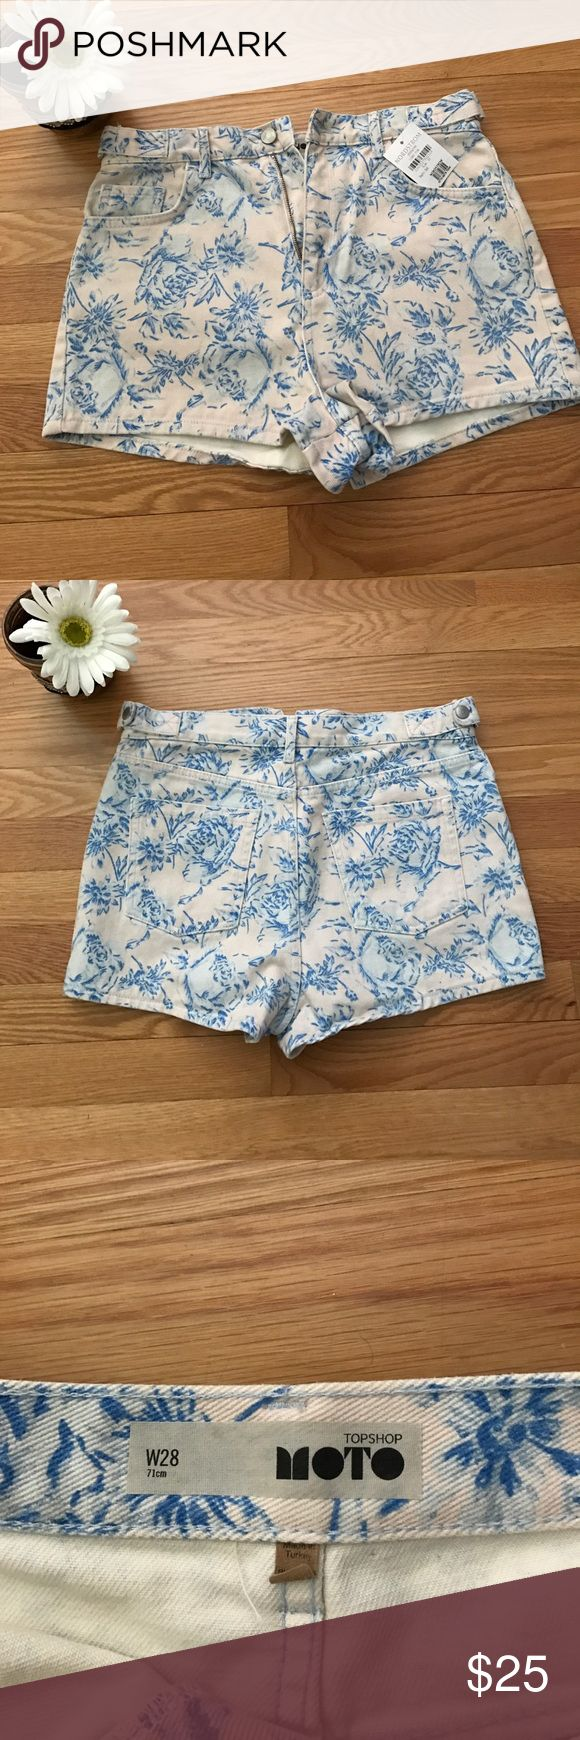 High Waisted Topshop Shorts SIZE 28 High waisted floral shorts SIZE 28 in women's! Bought from Topshop at Nordstrom's! NEVERWORN, tag is still on item! These shorts are perfect for a nice summer day at the beach, or pair it with a funky top for a music festival! MUST HAVE Topshop Shorts Jean Shorts